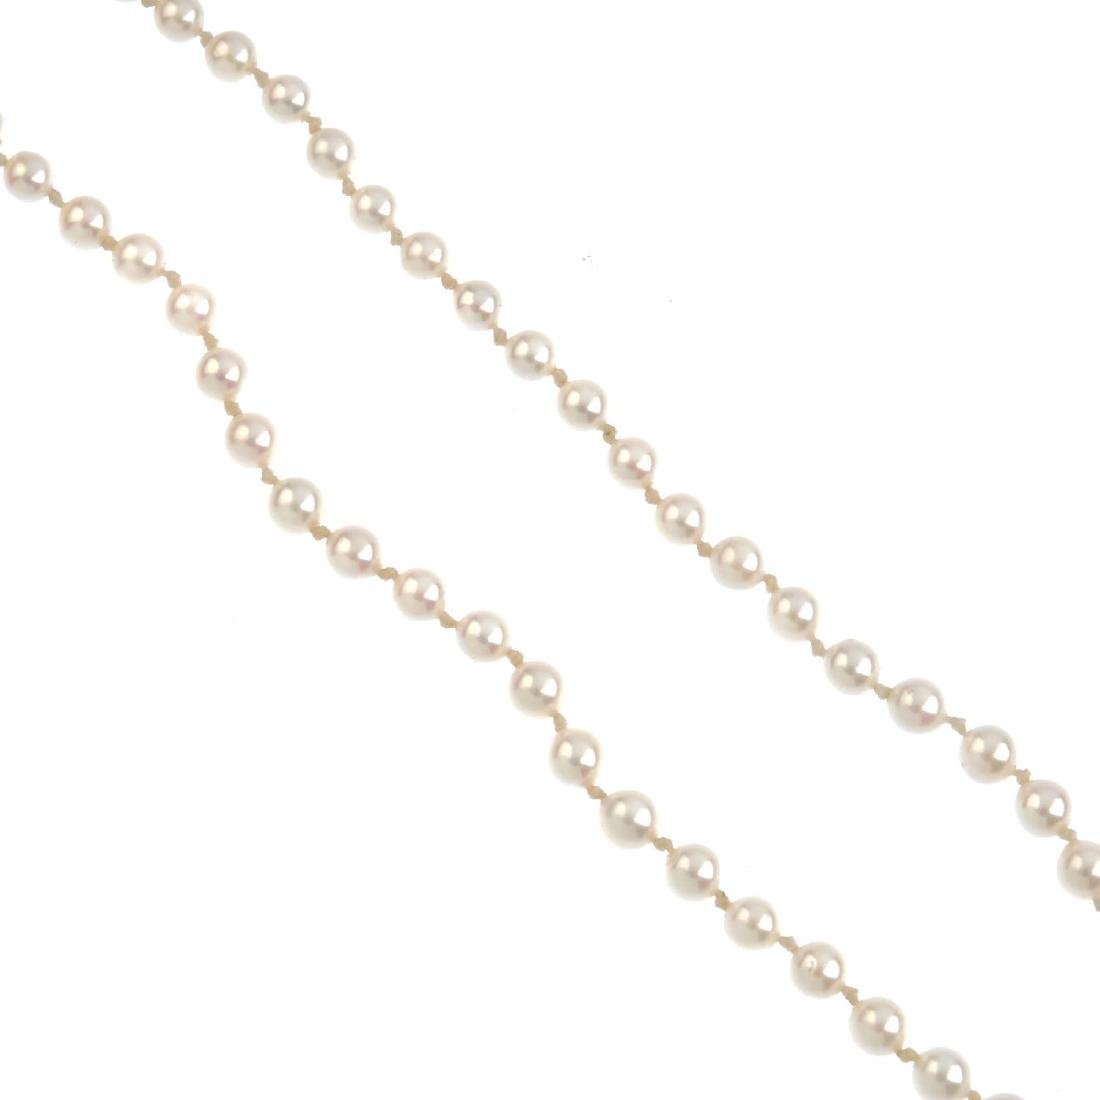 A cultured pearl single-strand necklace. Comprising 109